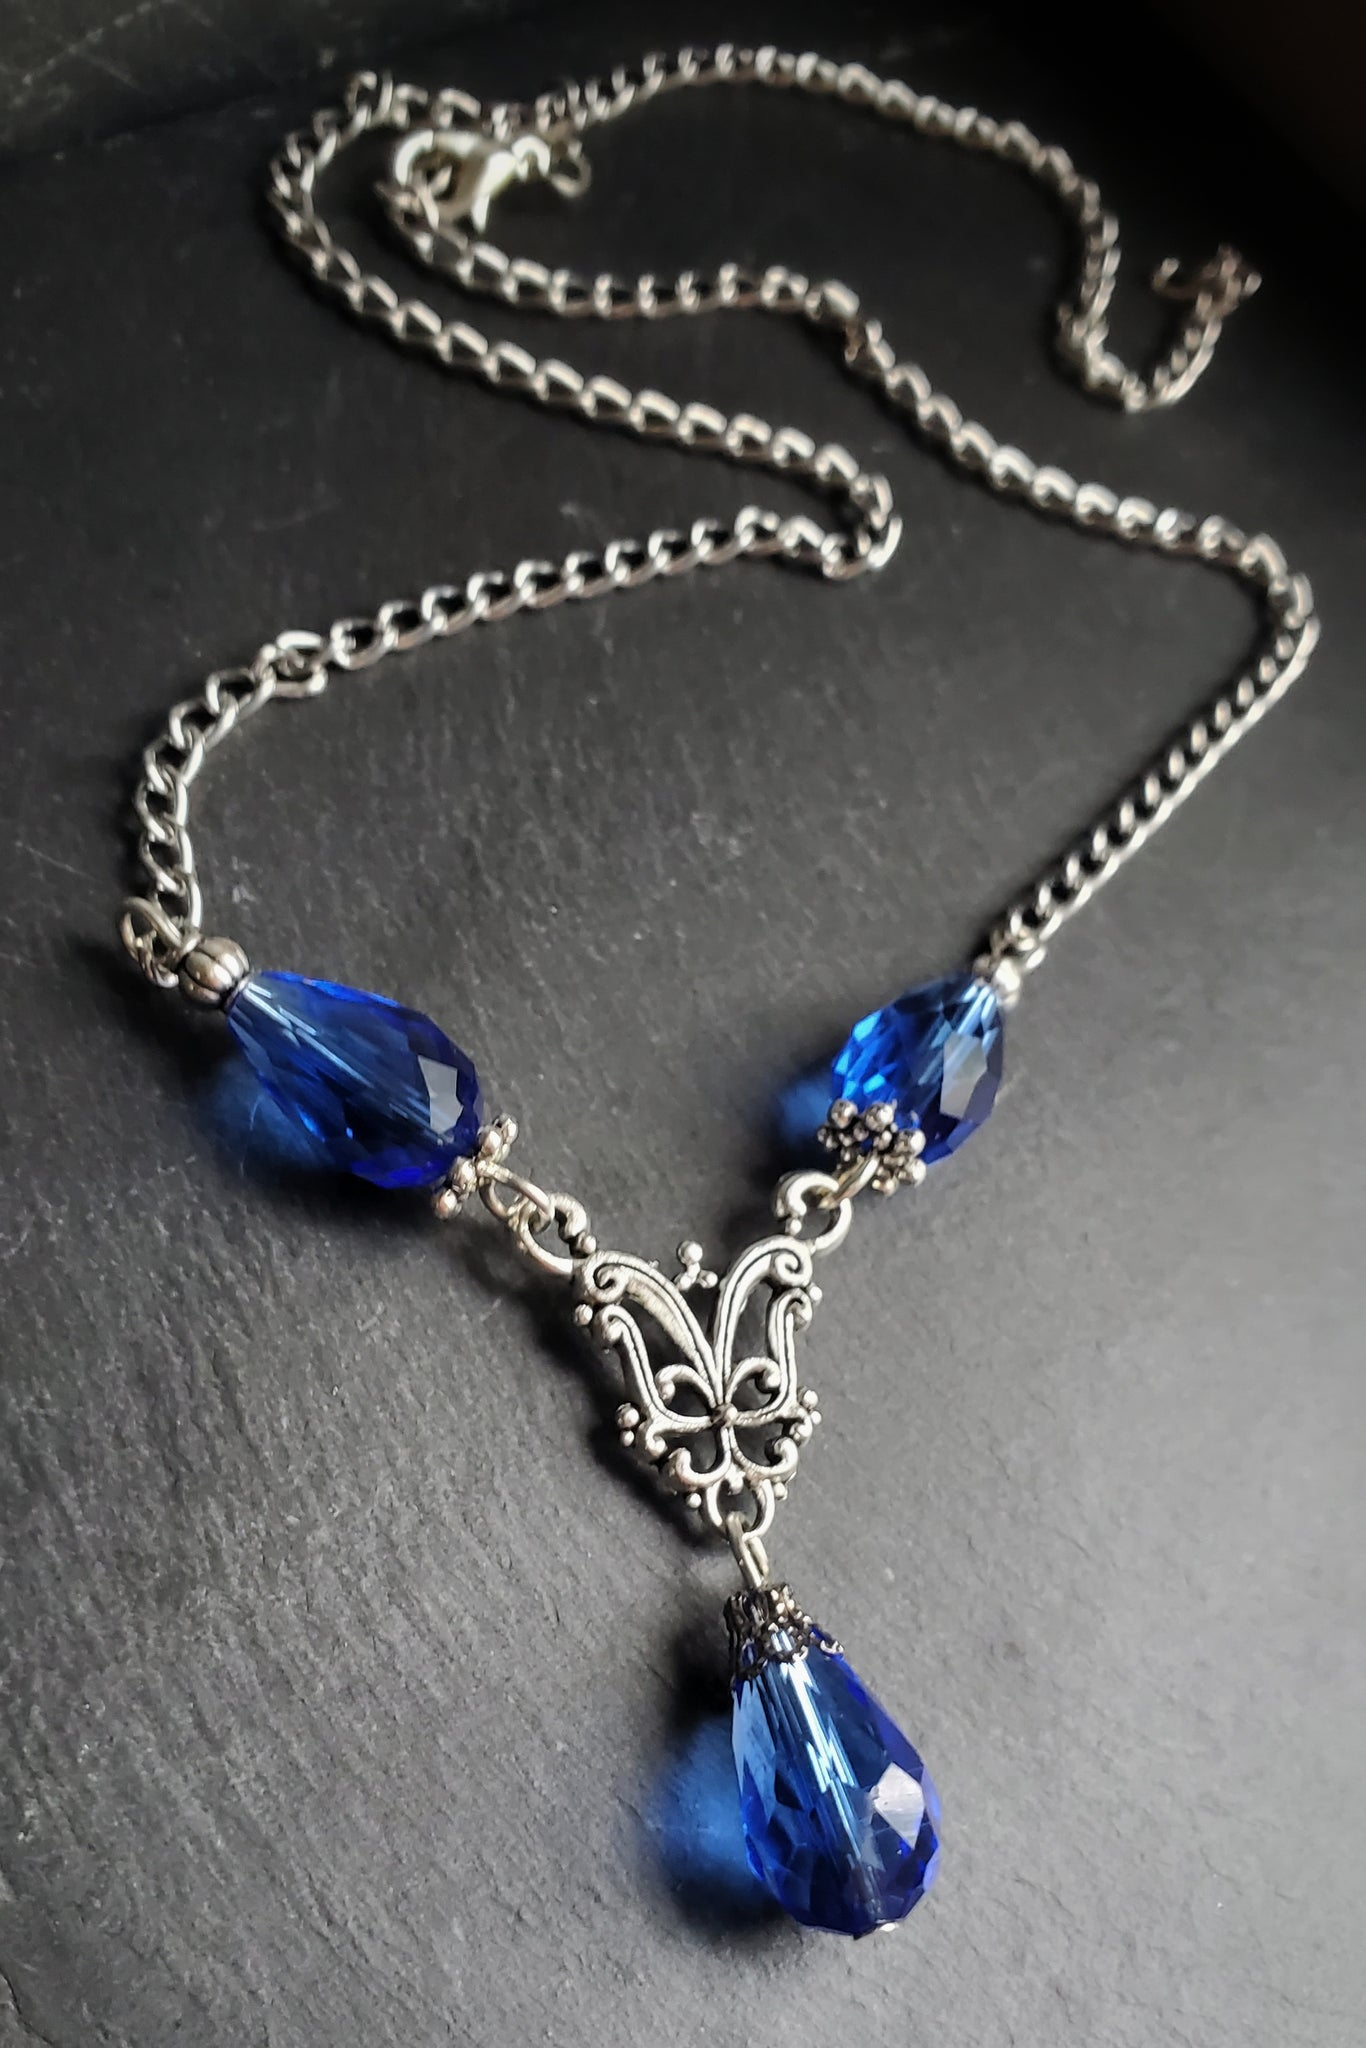 Blue Gothic Teardrop Necklace Handmade Jewelry Gift